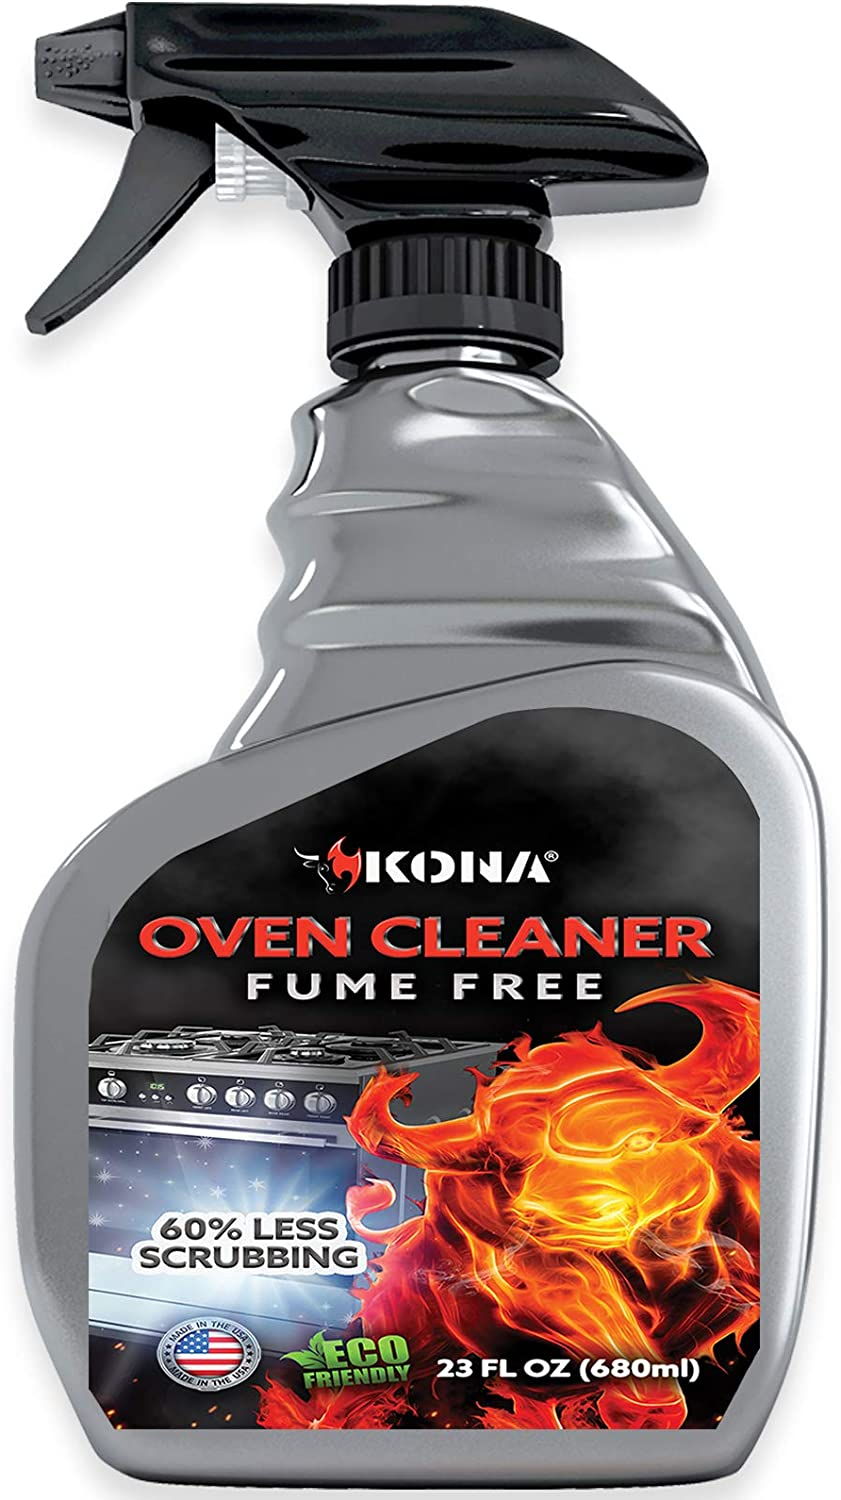 Kona Safe/Clean Oven Cleaner - Heavy Duty, Fume Free, No-Drip Formula - Non Toxic, 60% Less Scrubbing - Eco-Friendly, Food Safe Kitchen Degreaser, Biodegradable - 23oz